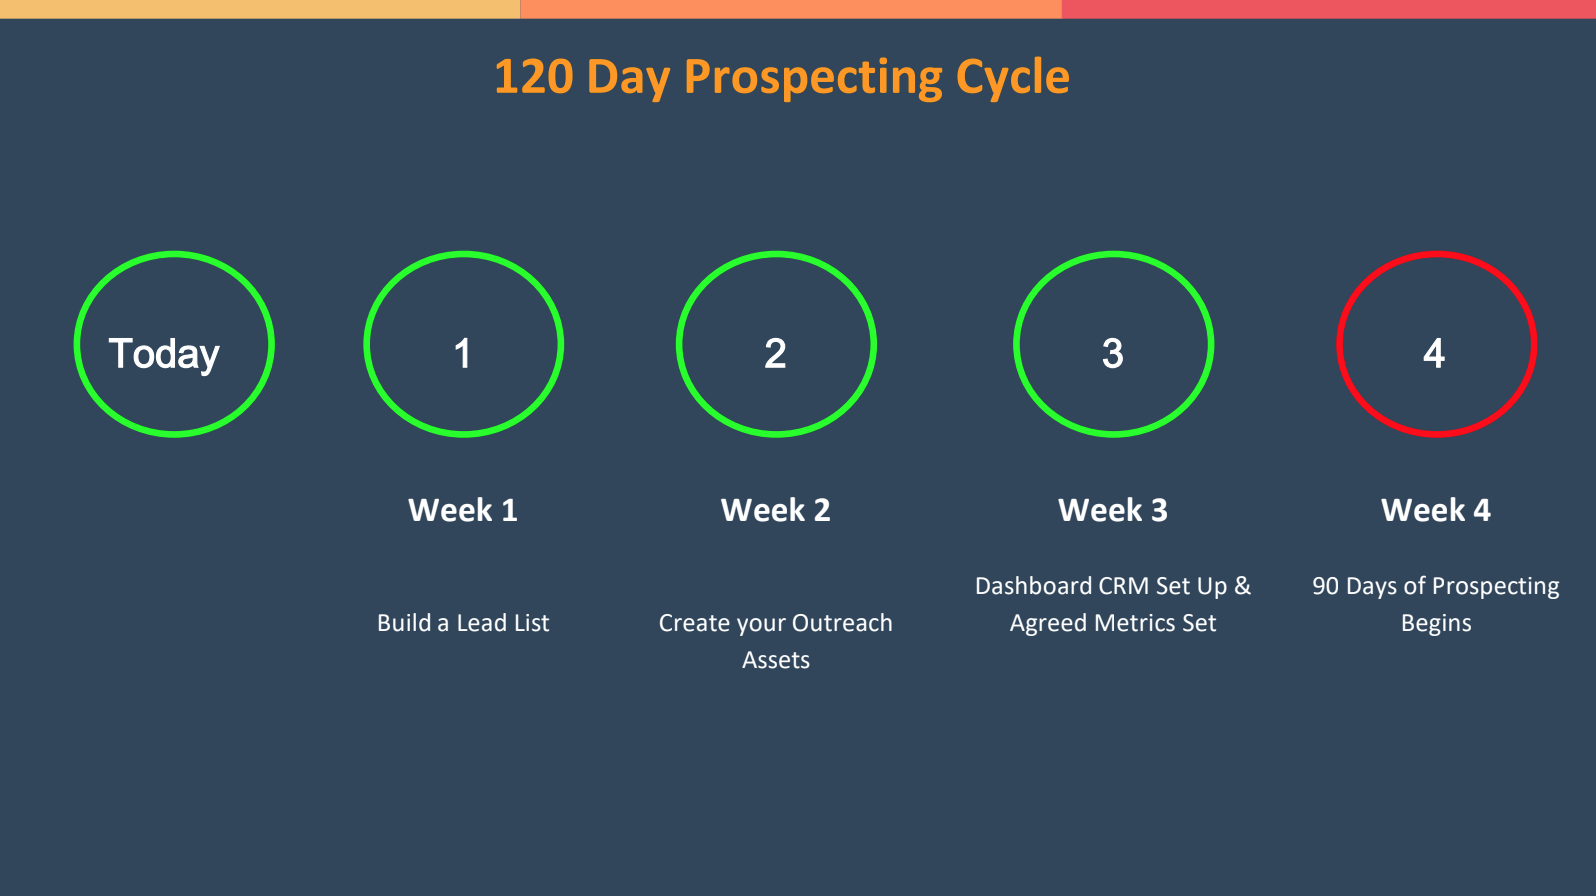 120 day prospecting cycle